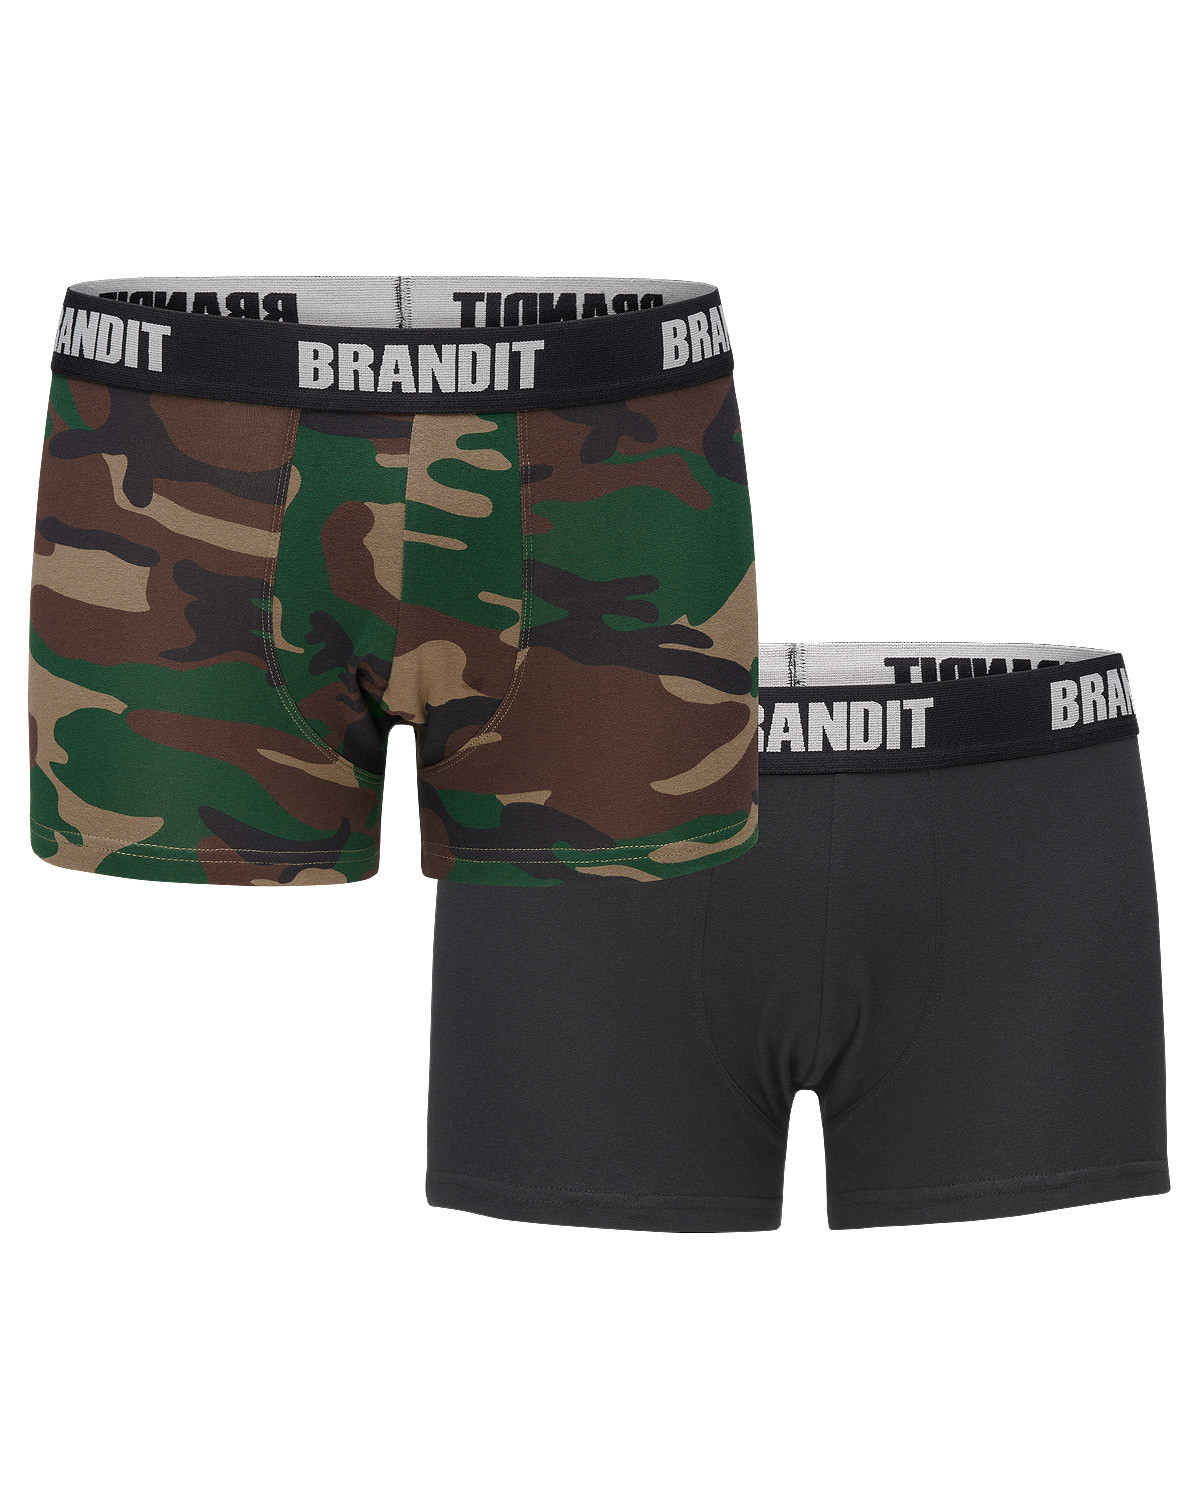 Image of   Brandit Boxershorts Logo 2er Pack (Woodland / Black, 2XL)